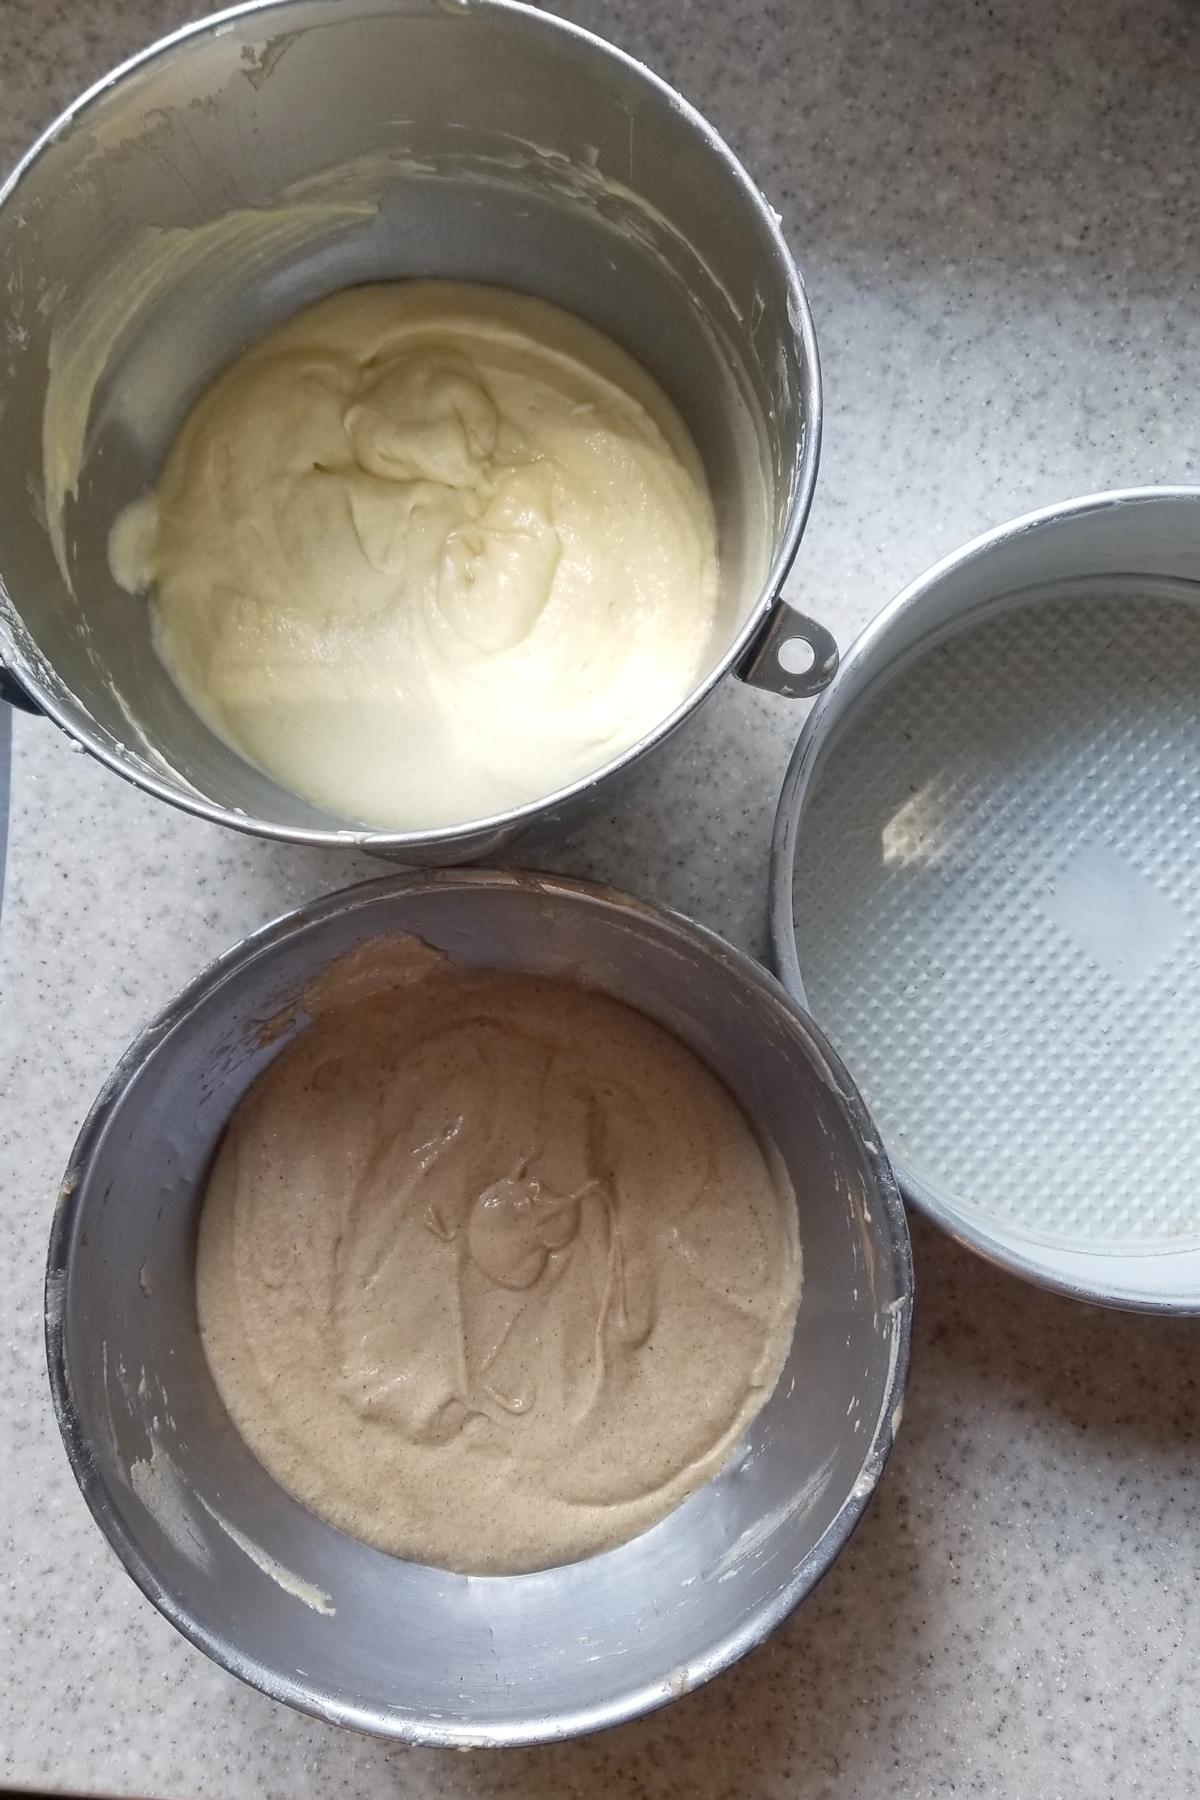 a bowl of white cake batter, a bowl of spiced cake batter and a buttered cake pan